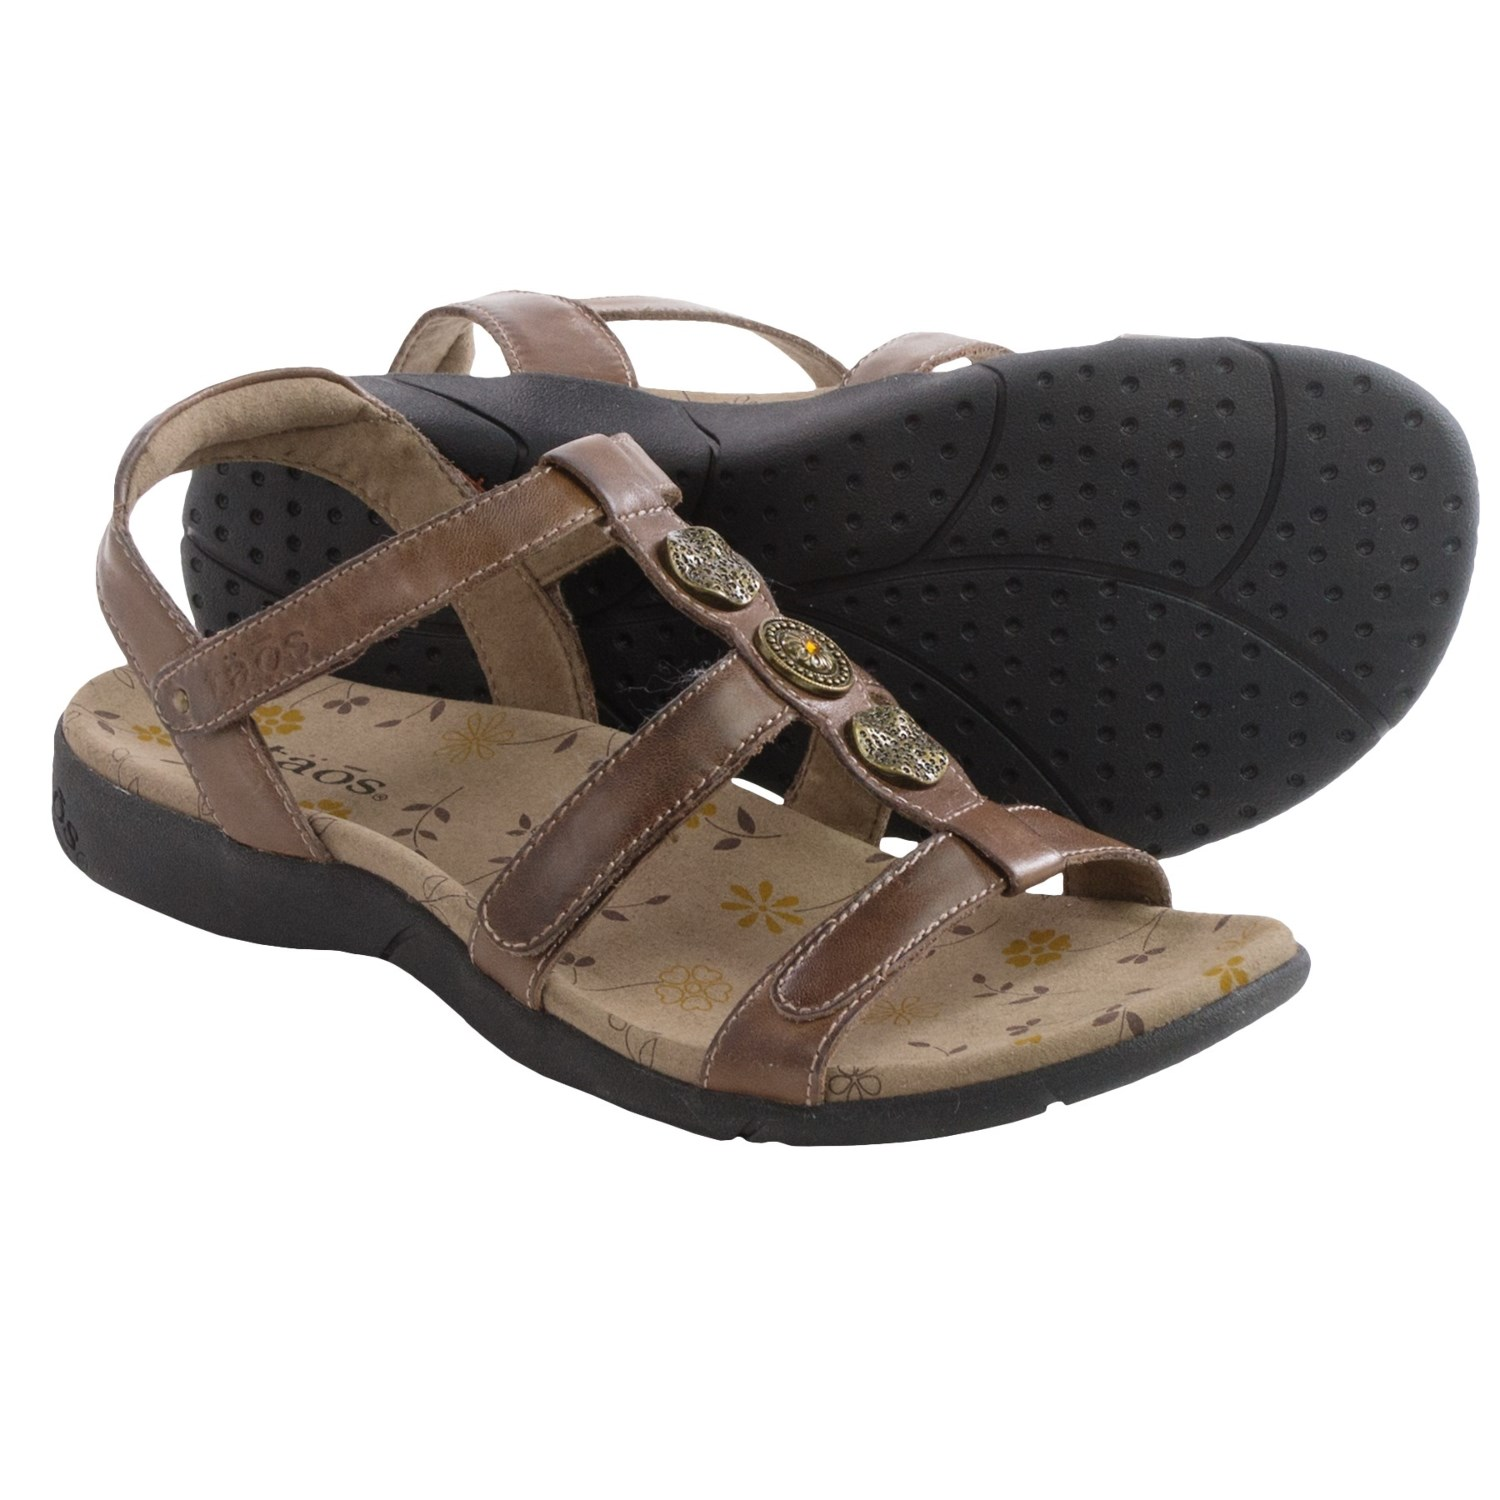 Creative KEEN Whisper Sandal - Womenu0026#39;s | Backcountry.com